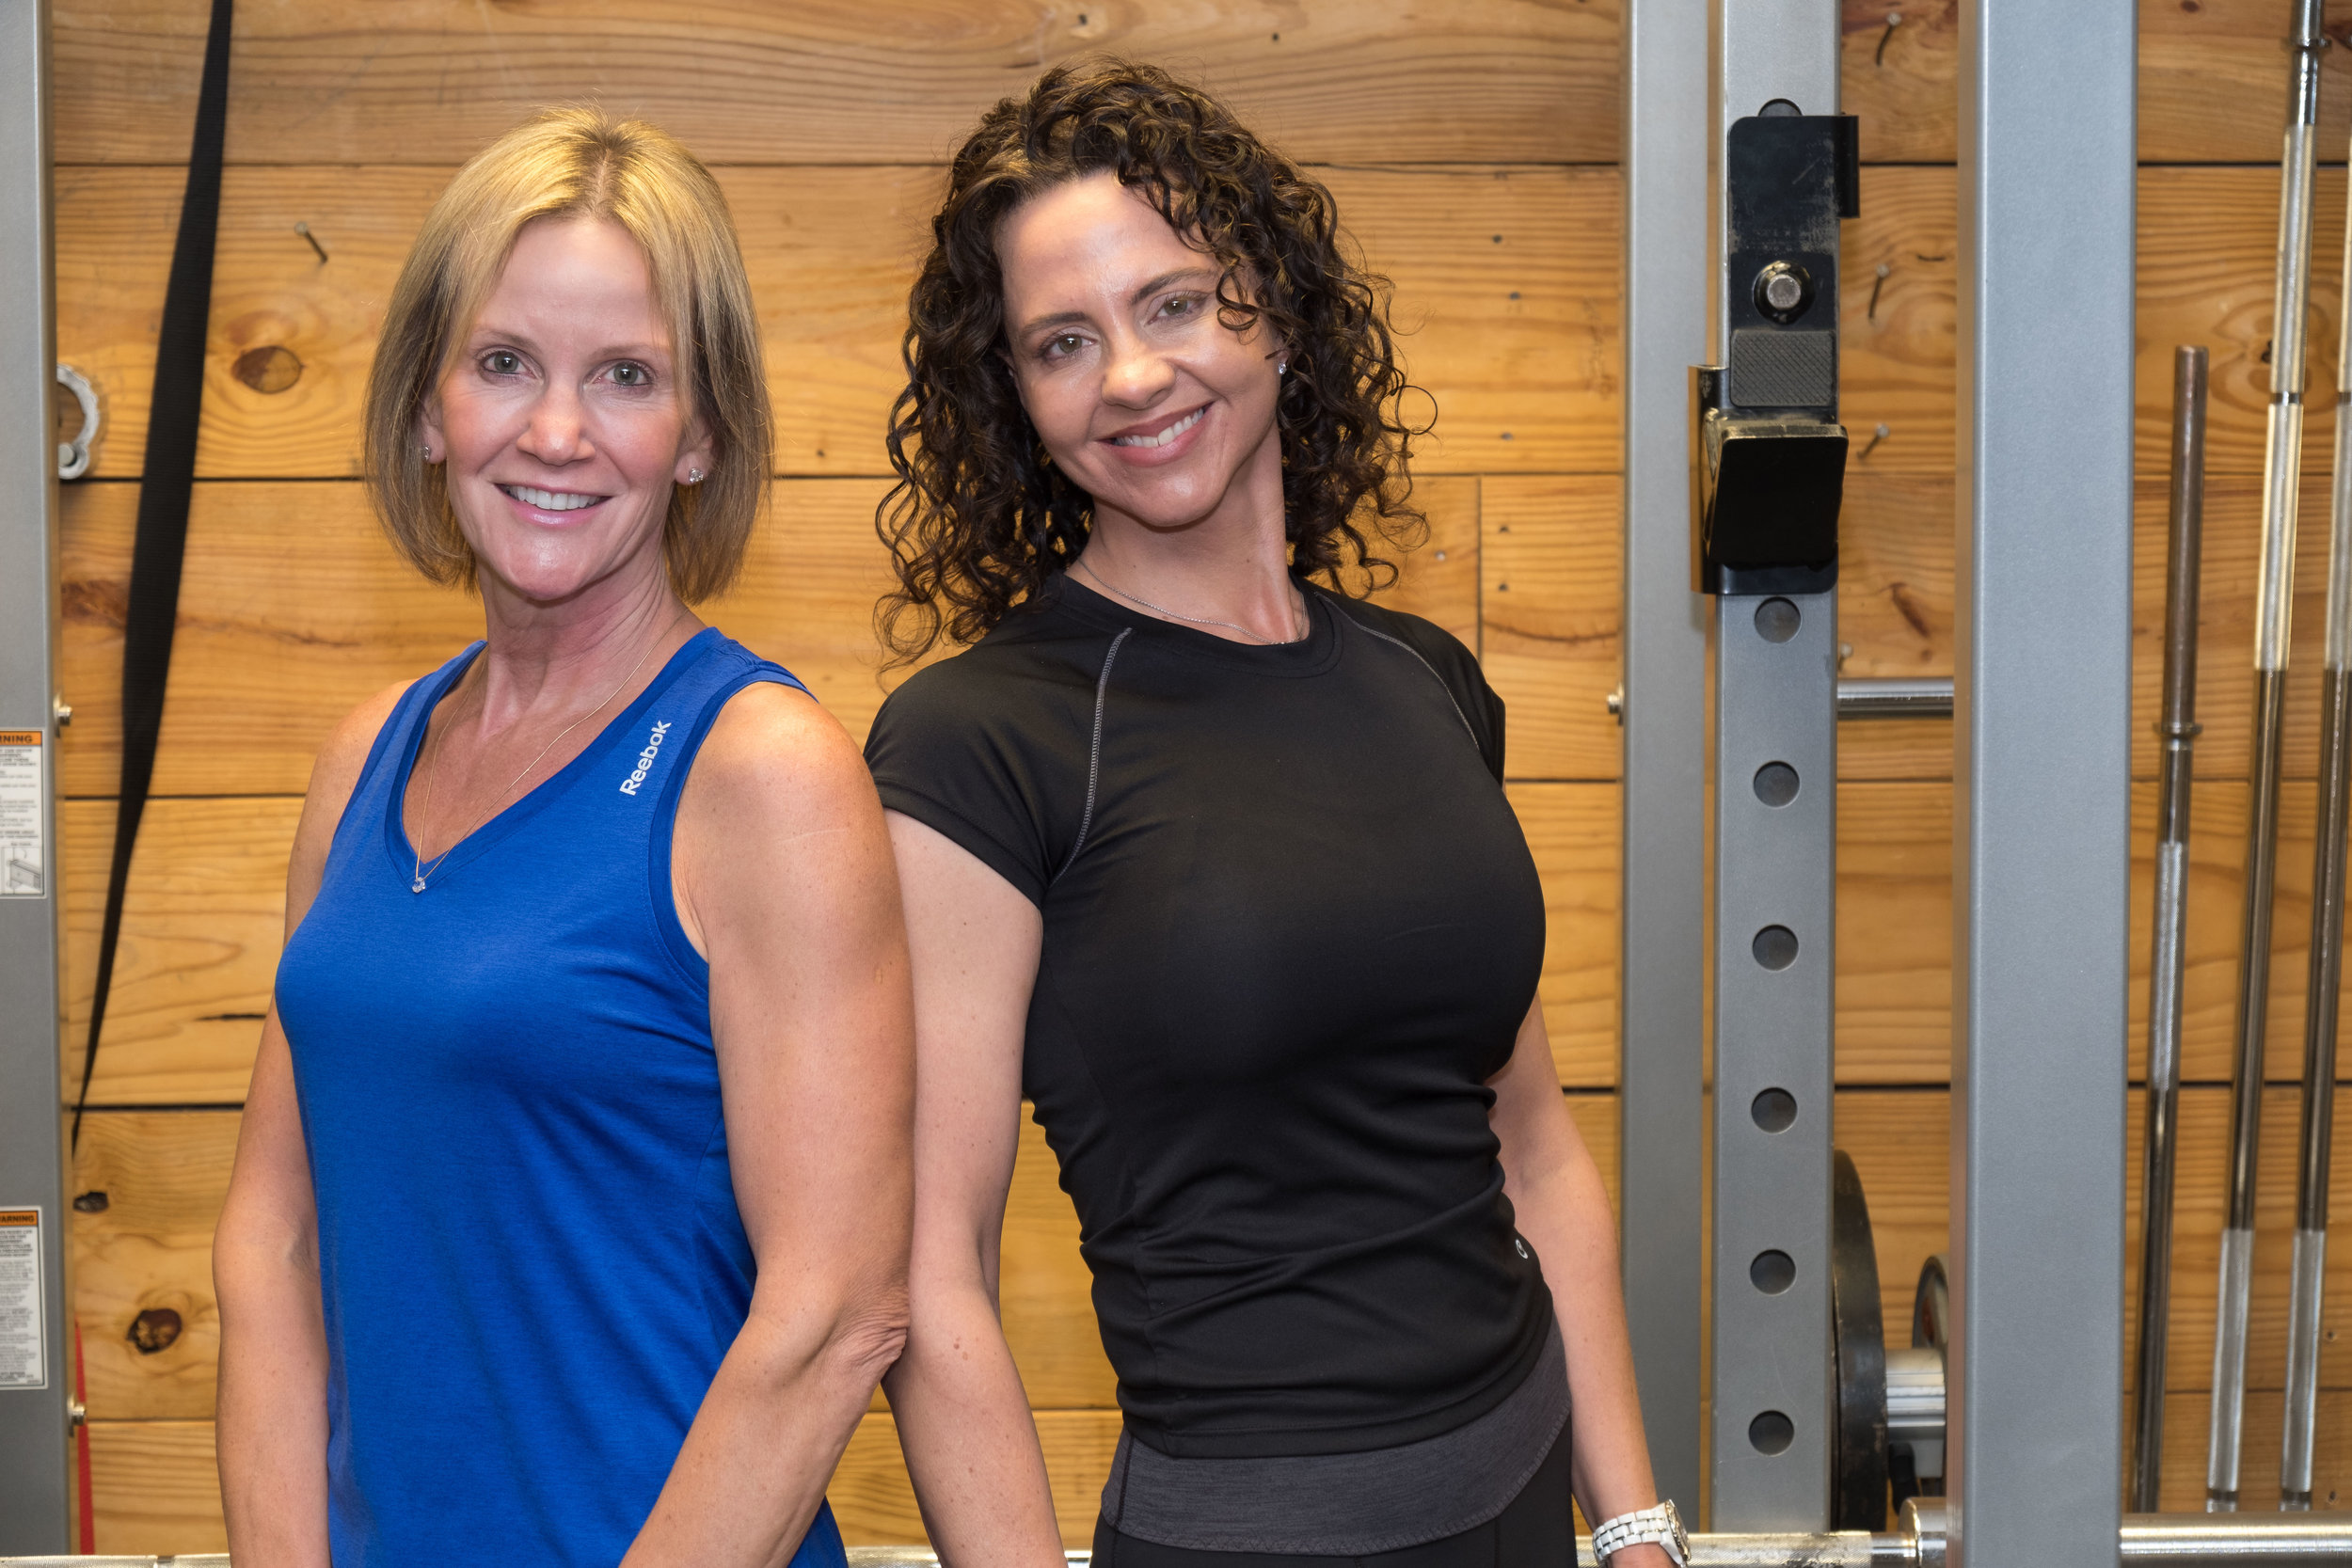 Lea and Myra are two of the exceptional, professional trainers at North Raleigh Fitness